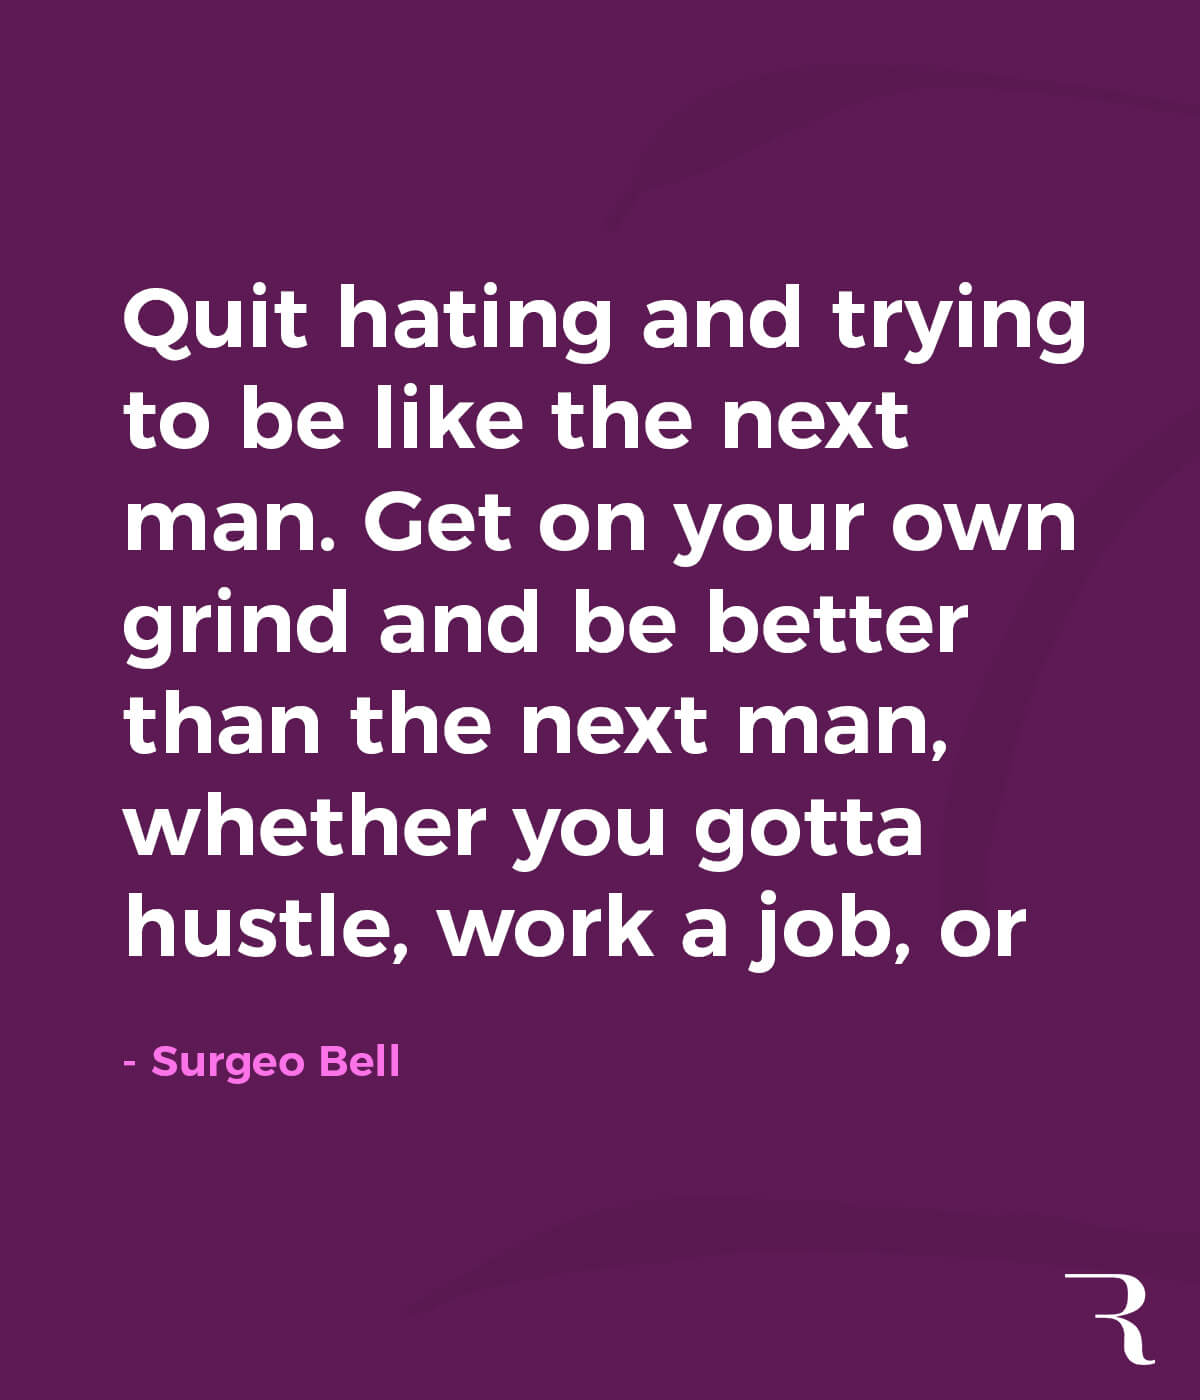 Trying Quotes: 112 Motivational Quotes To Hustle You To Get Sh*t Done